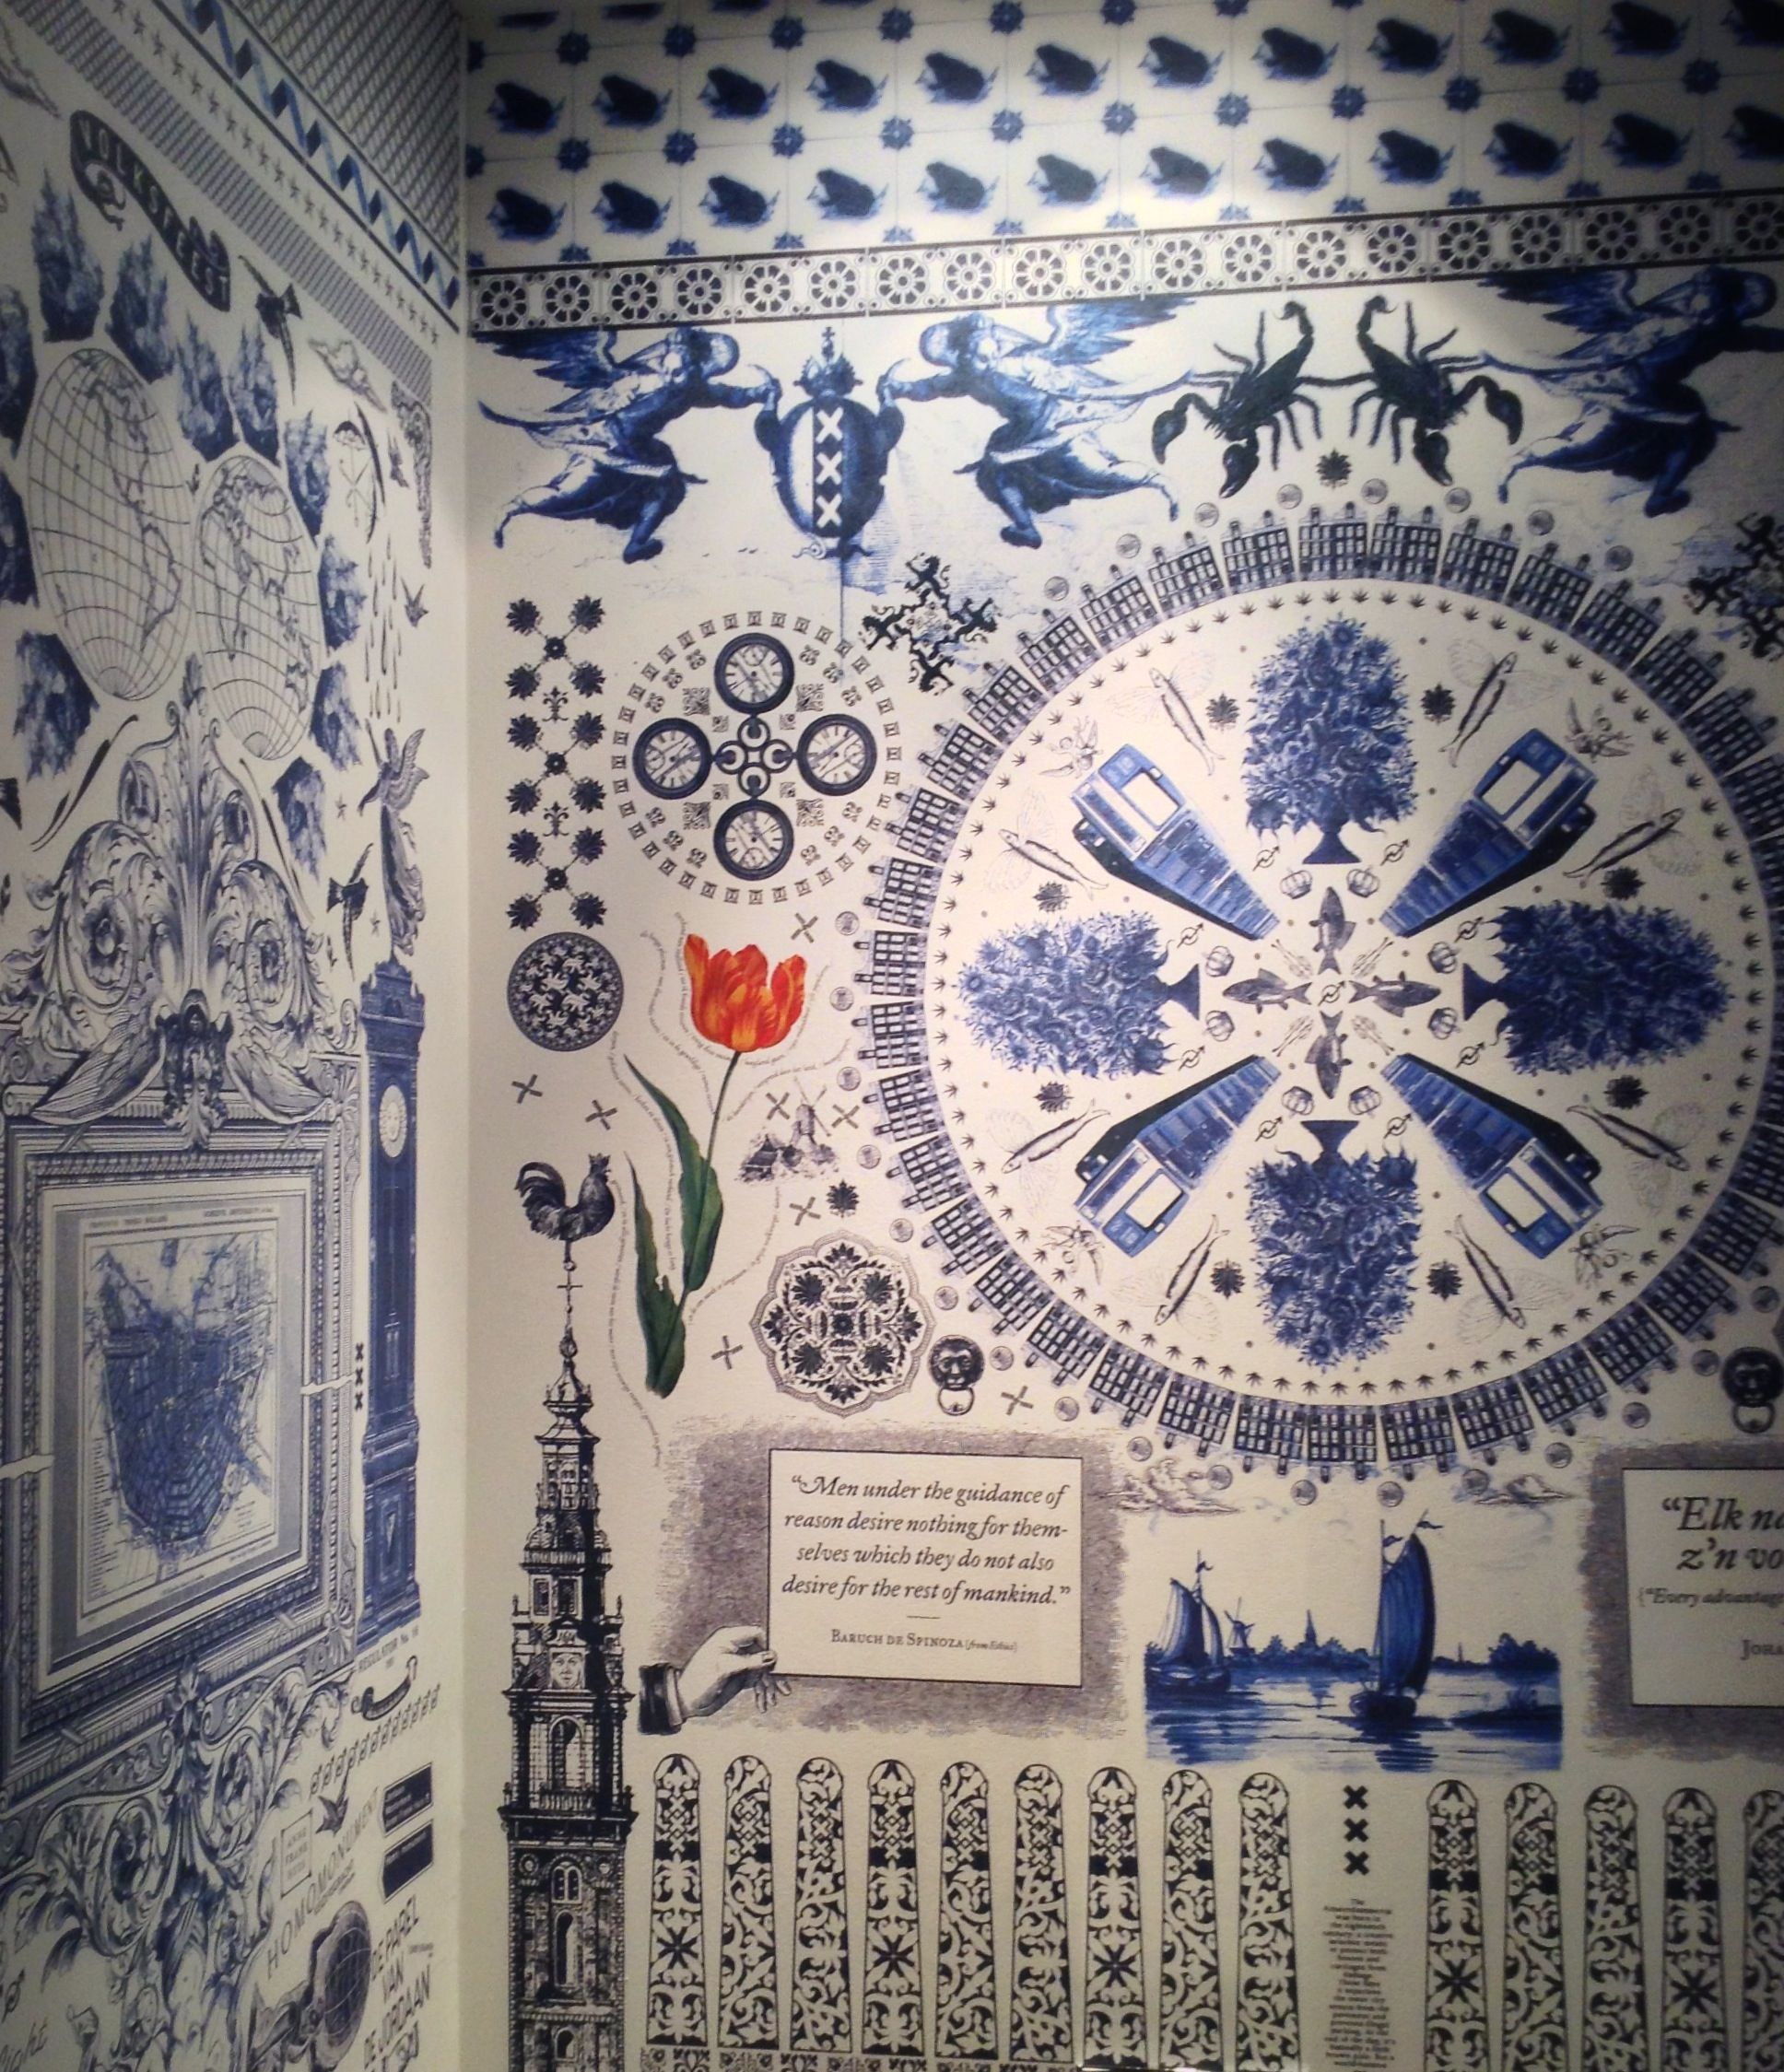 Vloertegels Badkamer Delft Delft Blue Holland Wallpaper Delft Blue Wallpaper